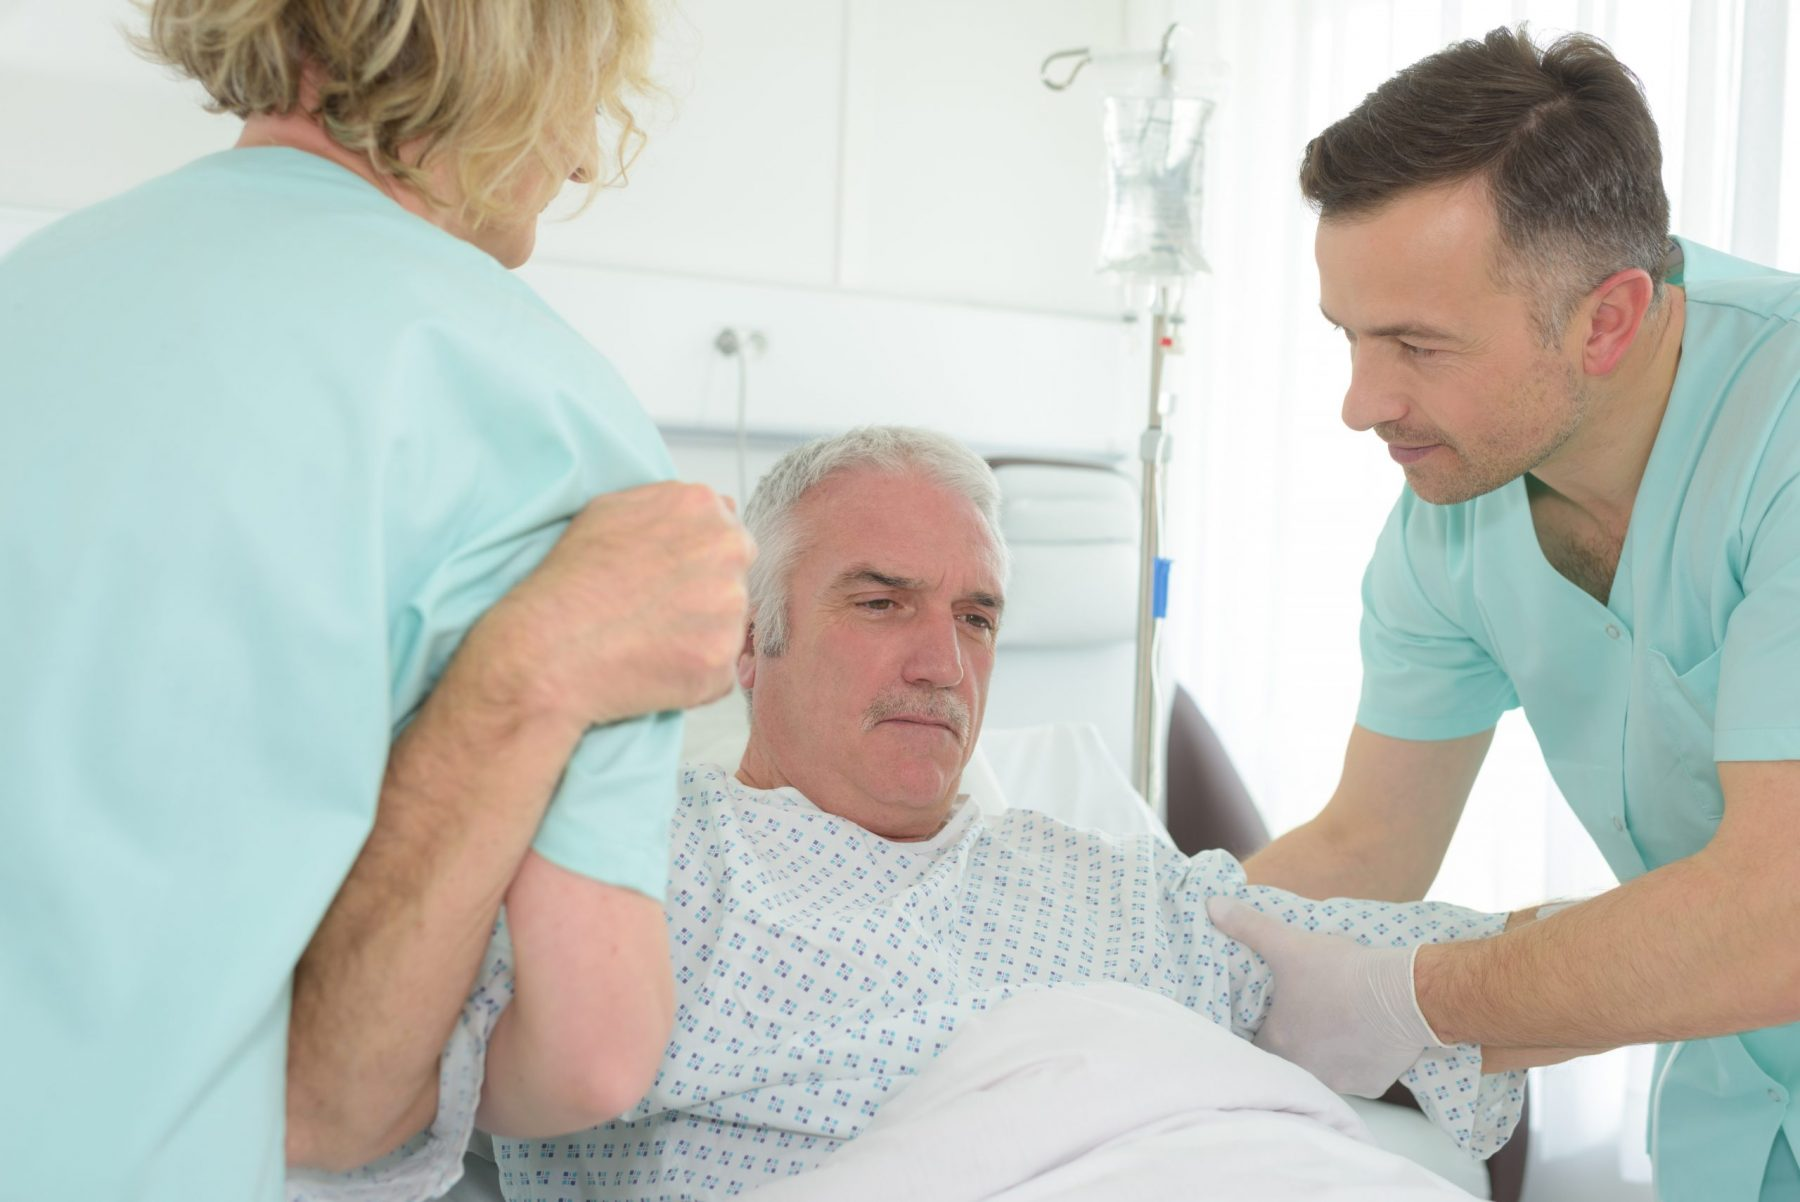 Medical workers helping patient rise from bed